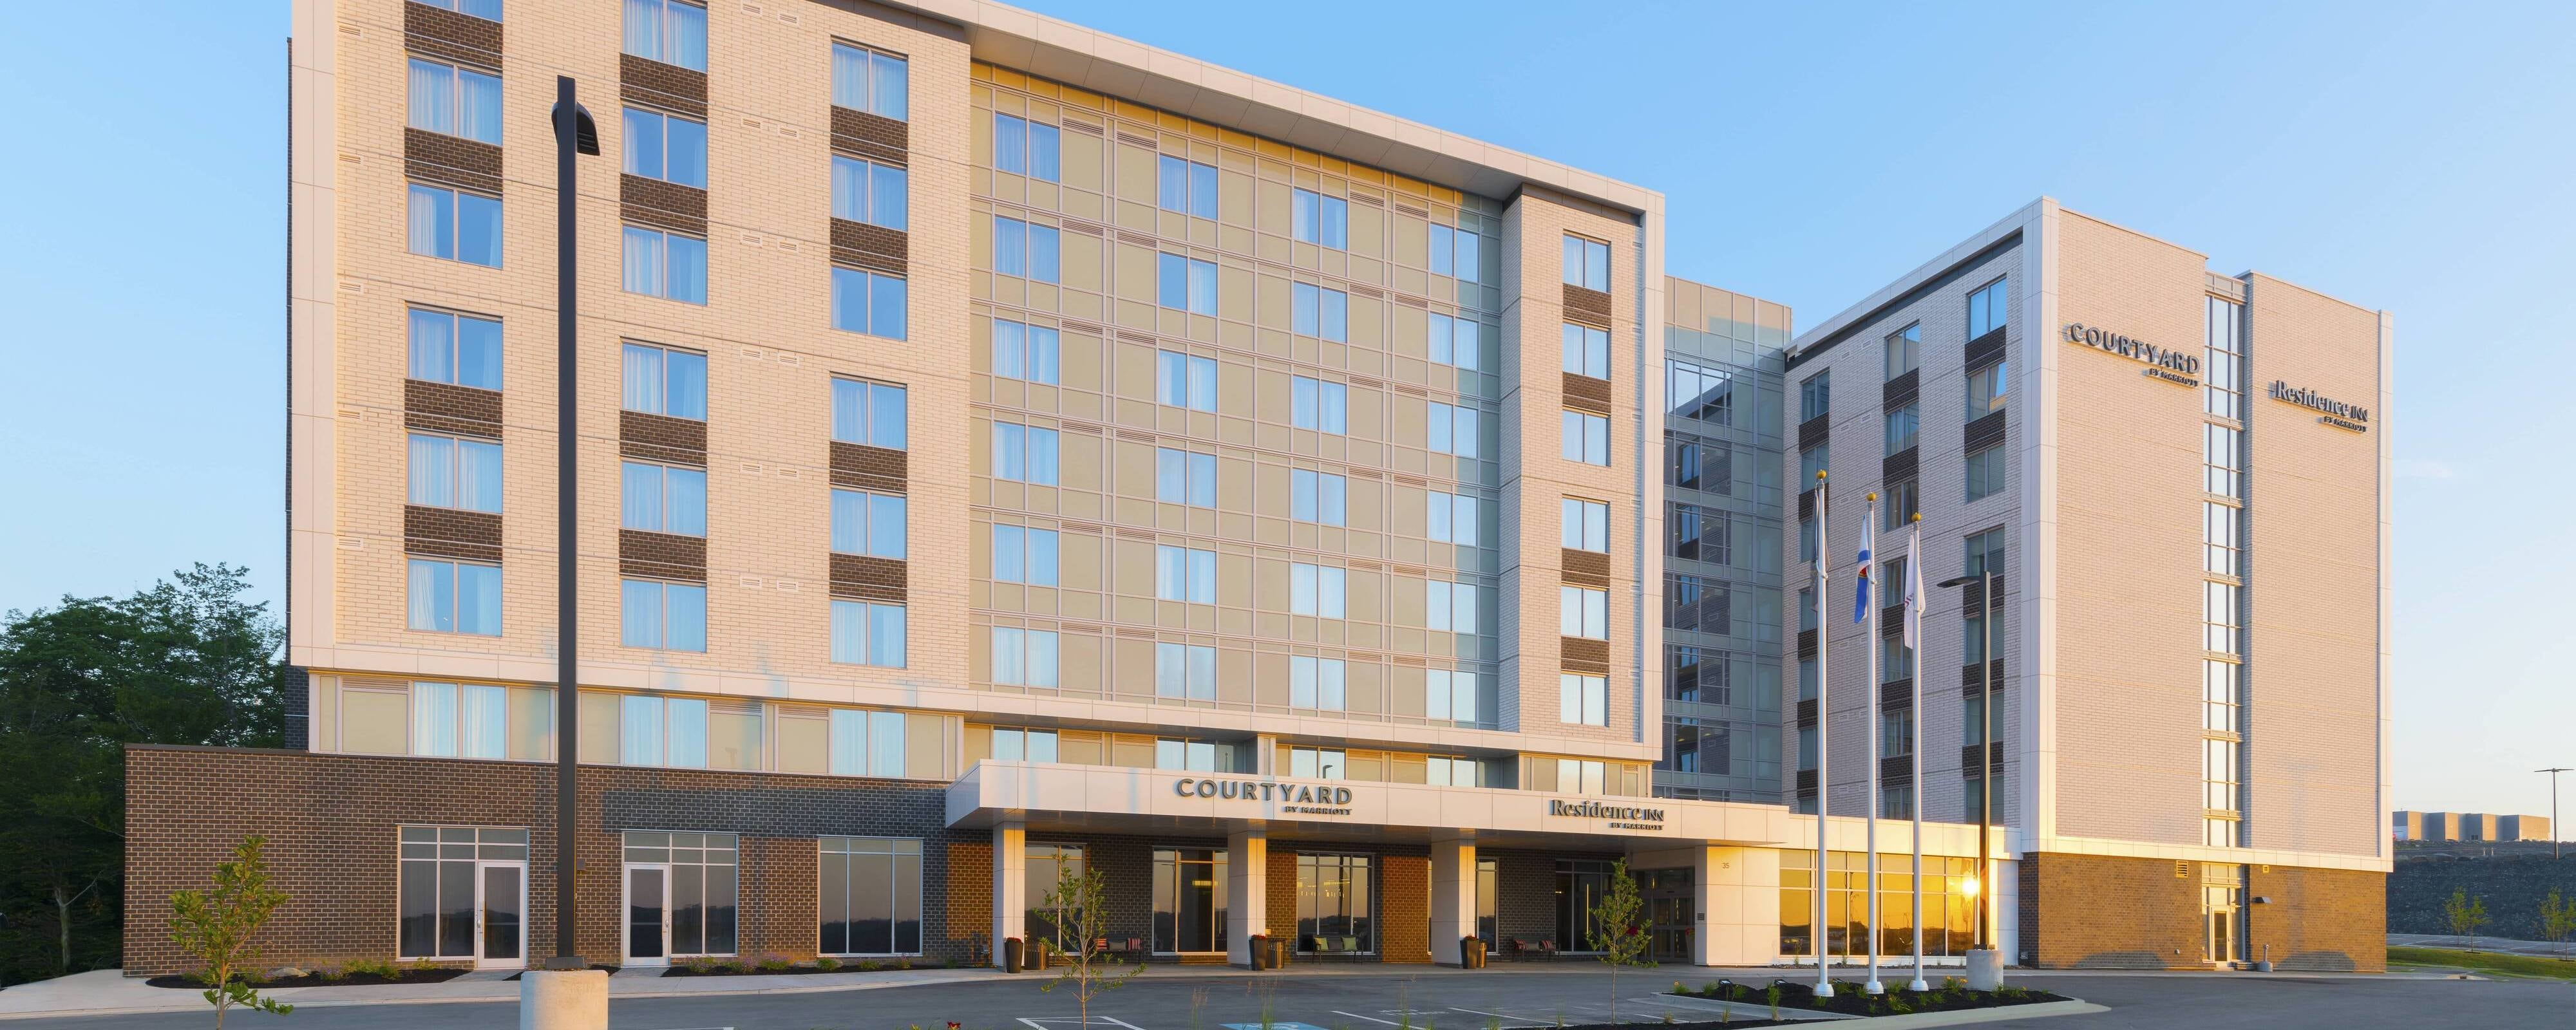 Dartmouth Crossing Hotels With Complimentary Breakfast Residence Inn Halifax